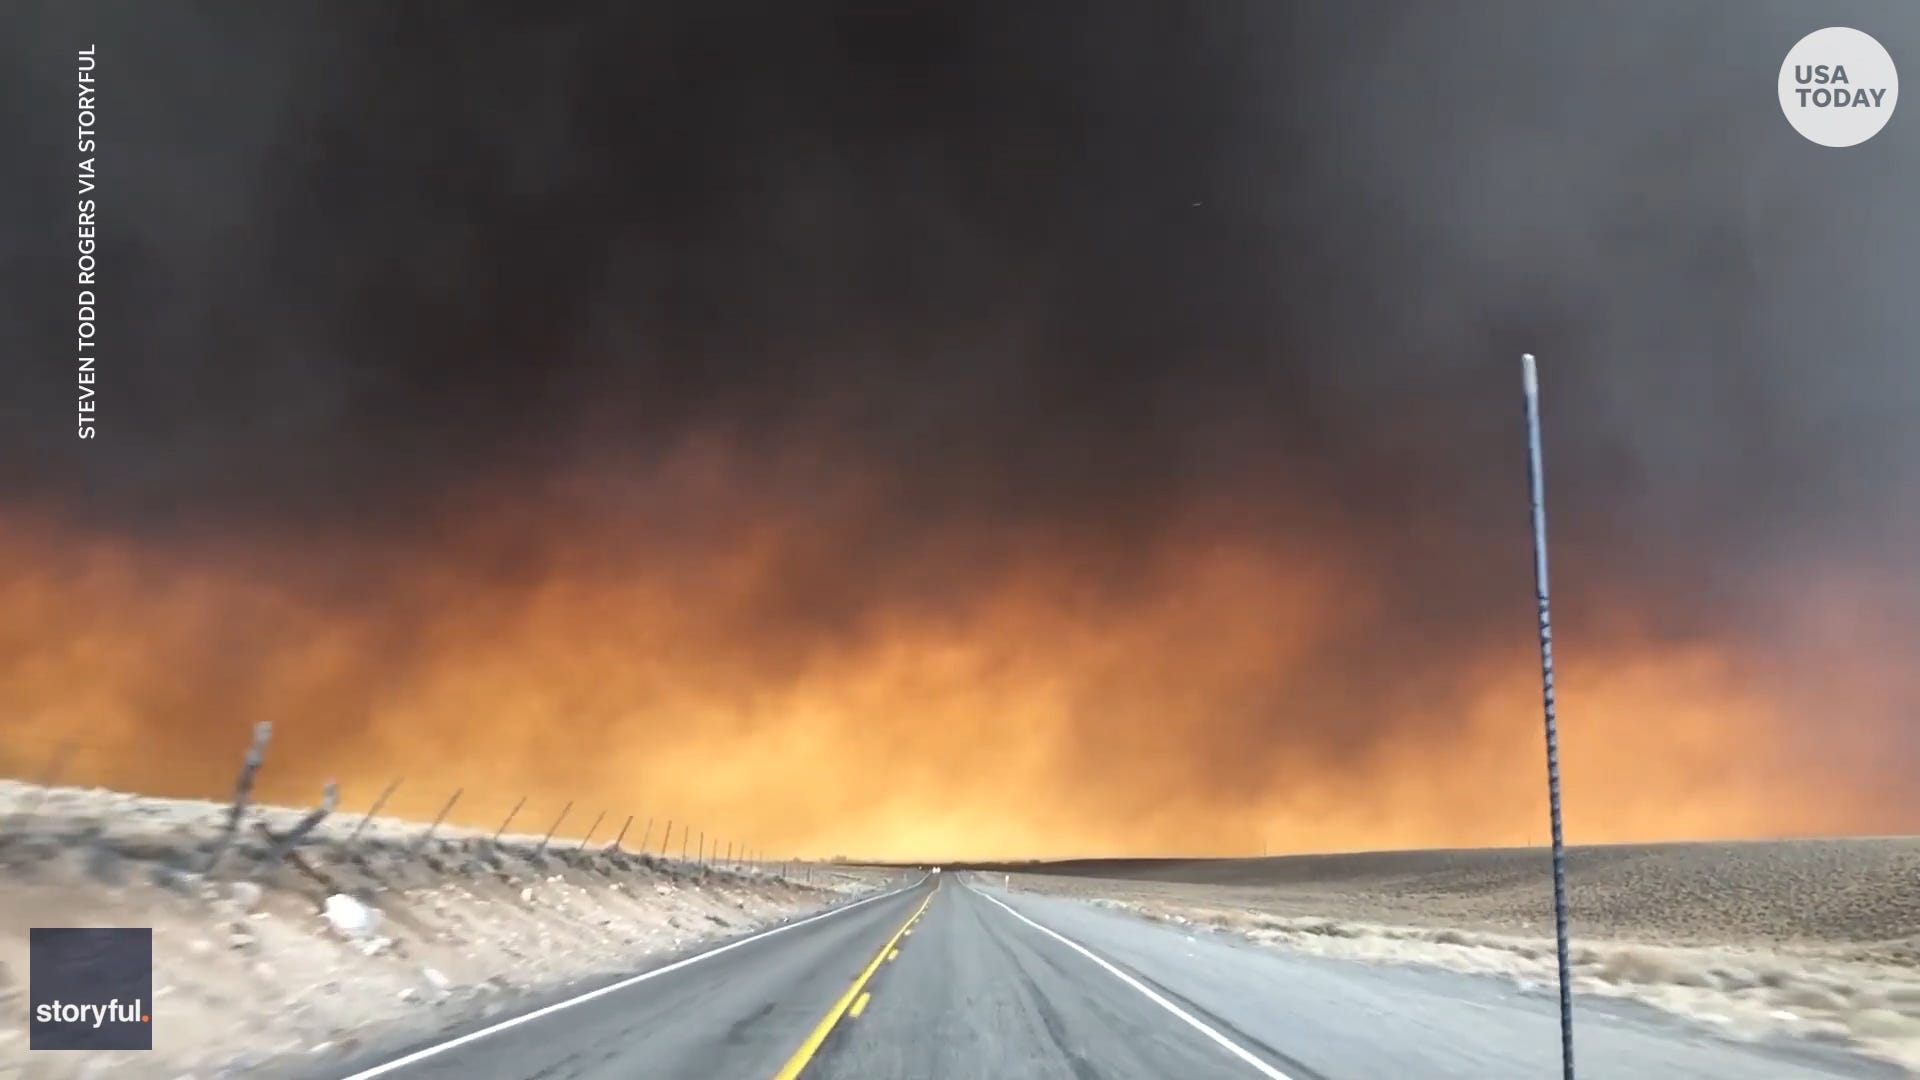 Driving into Armageddon : Man captures drive into wildfire on video